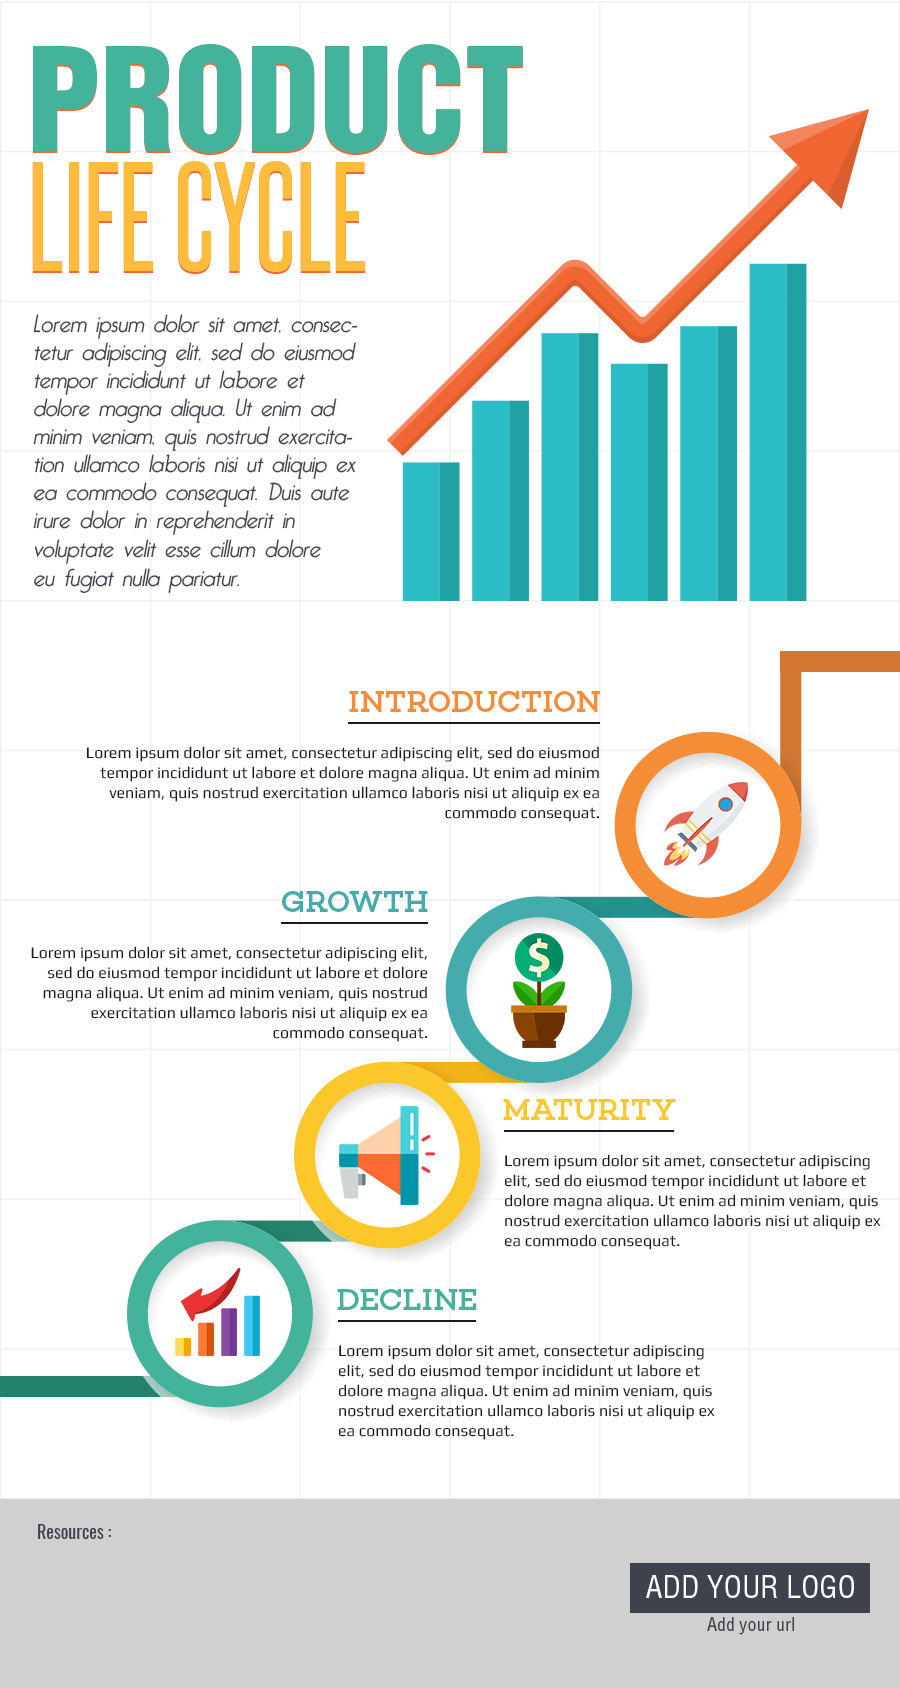 free infographic templates - product life cycle free template infographic template